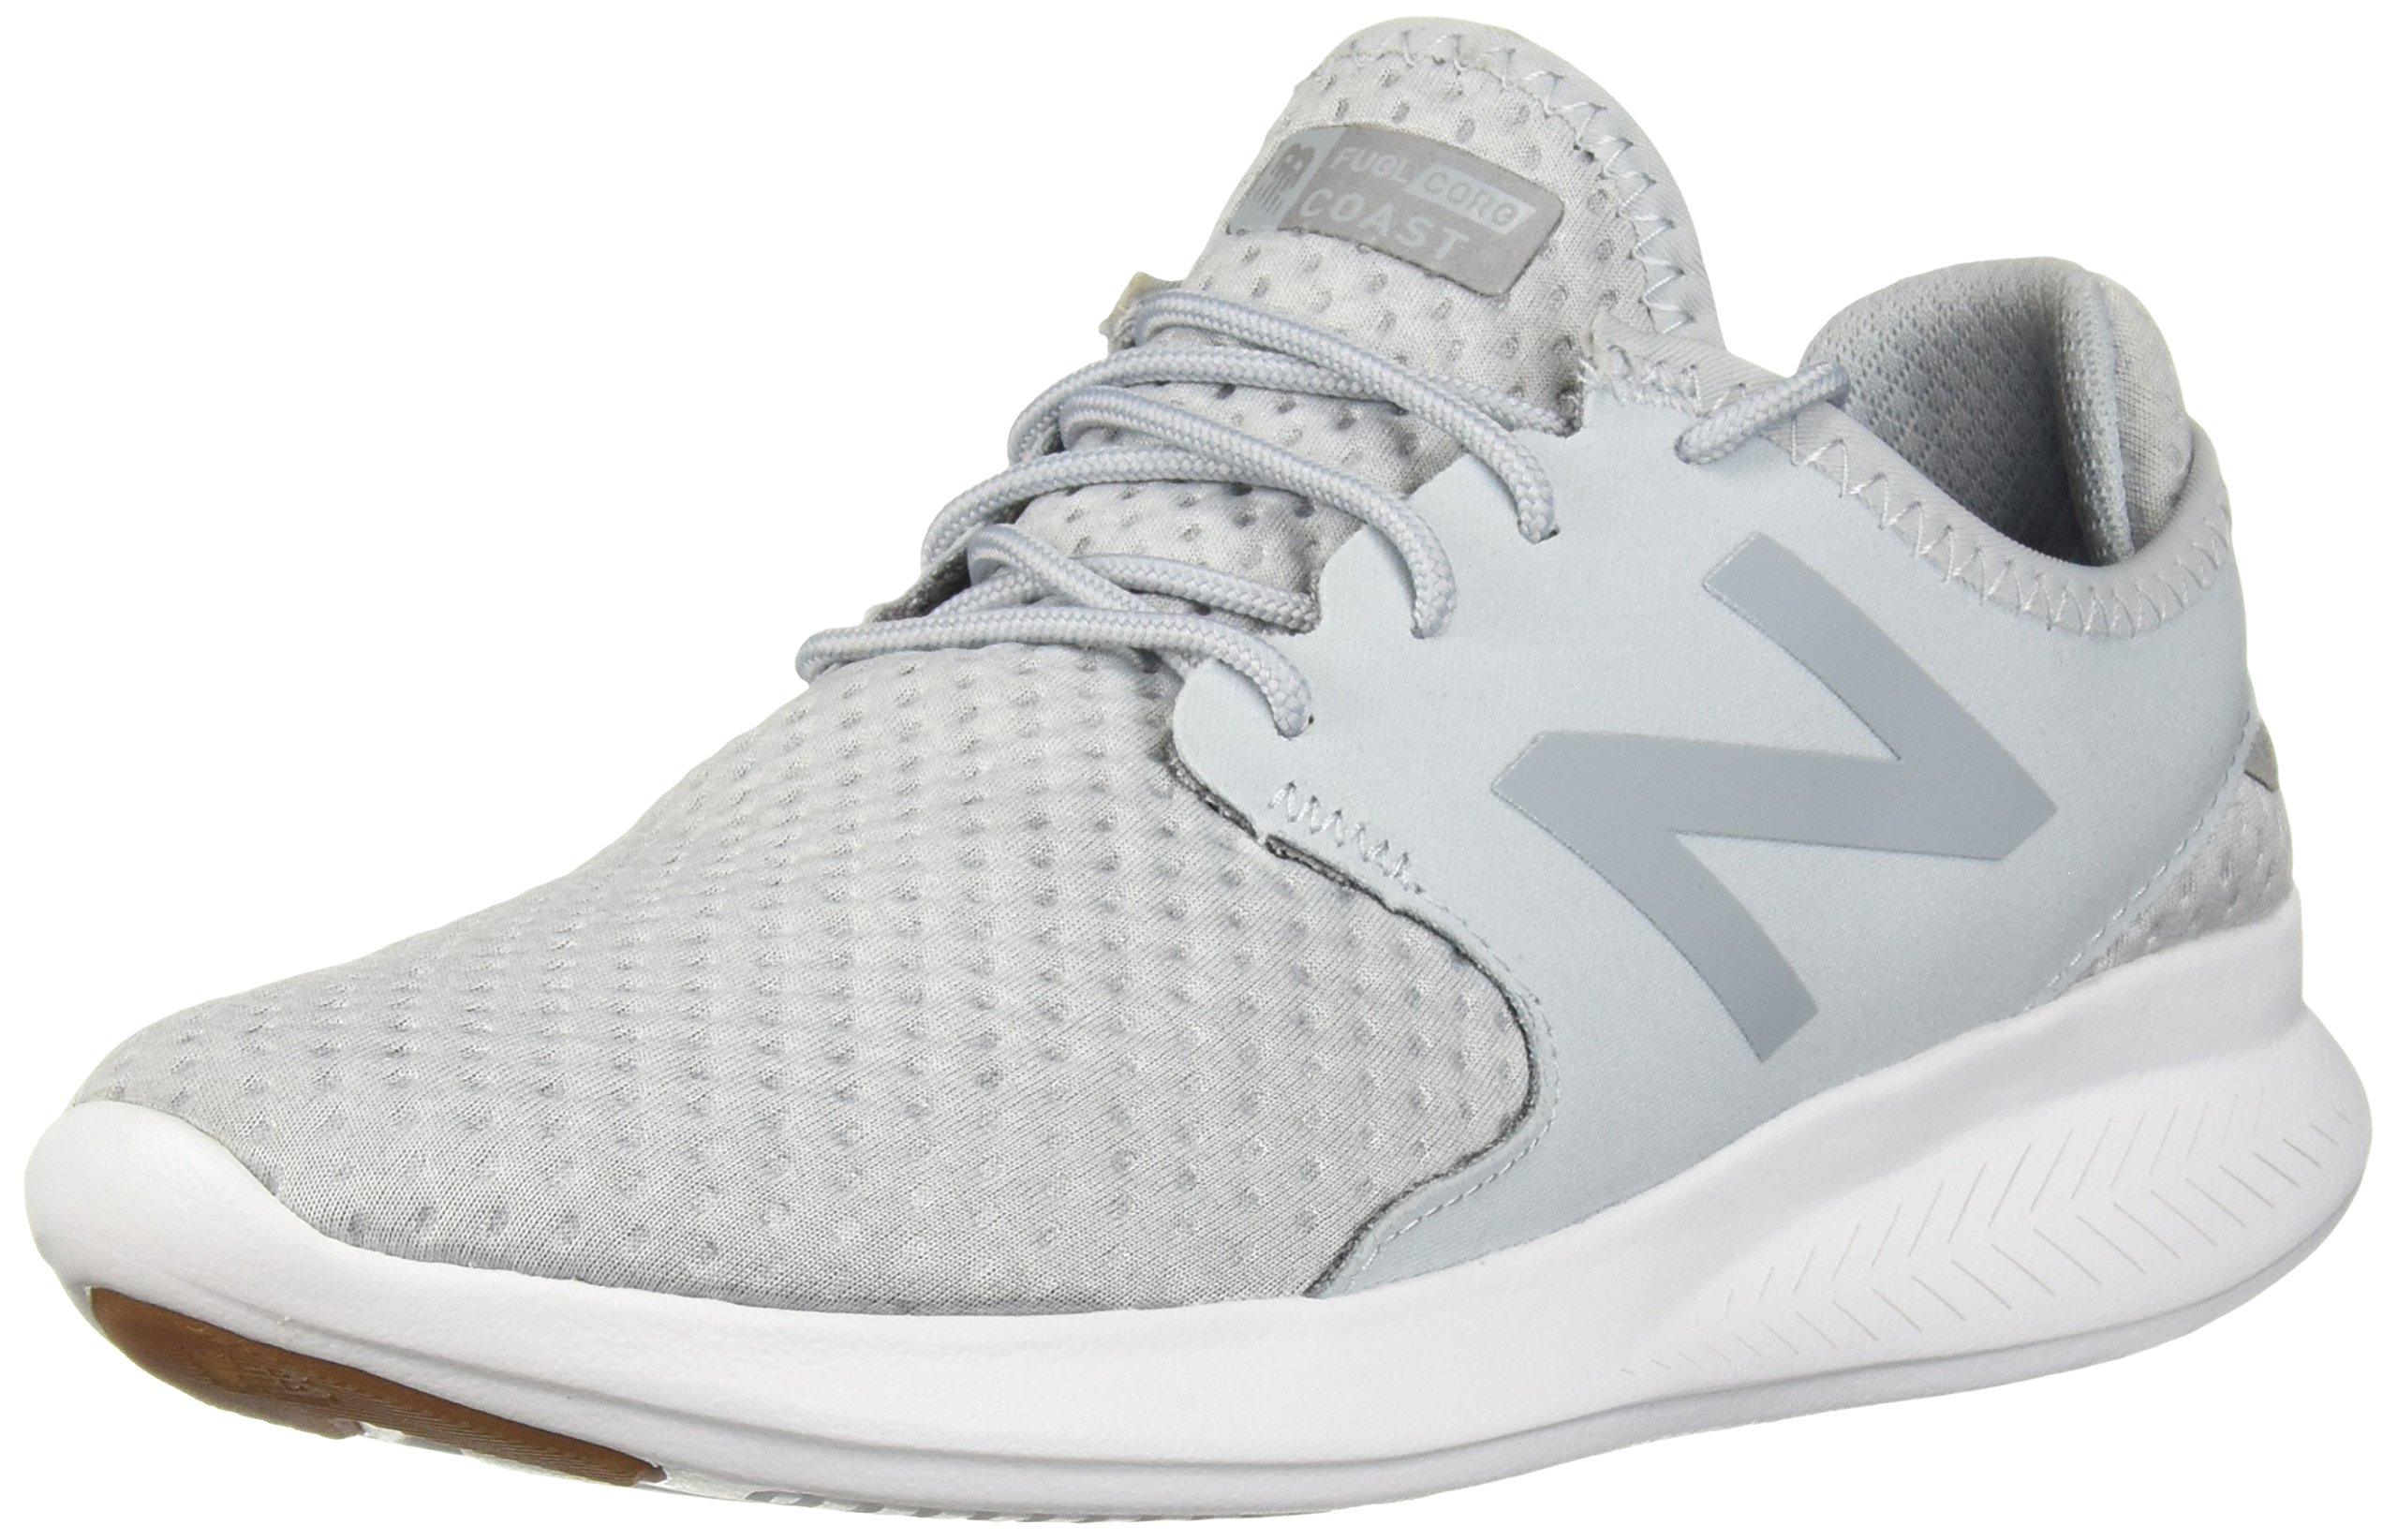 New Balance Women's Coast v3 Running-Shoes,Light Cyclone/Silver,9 B US